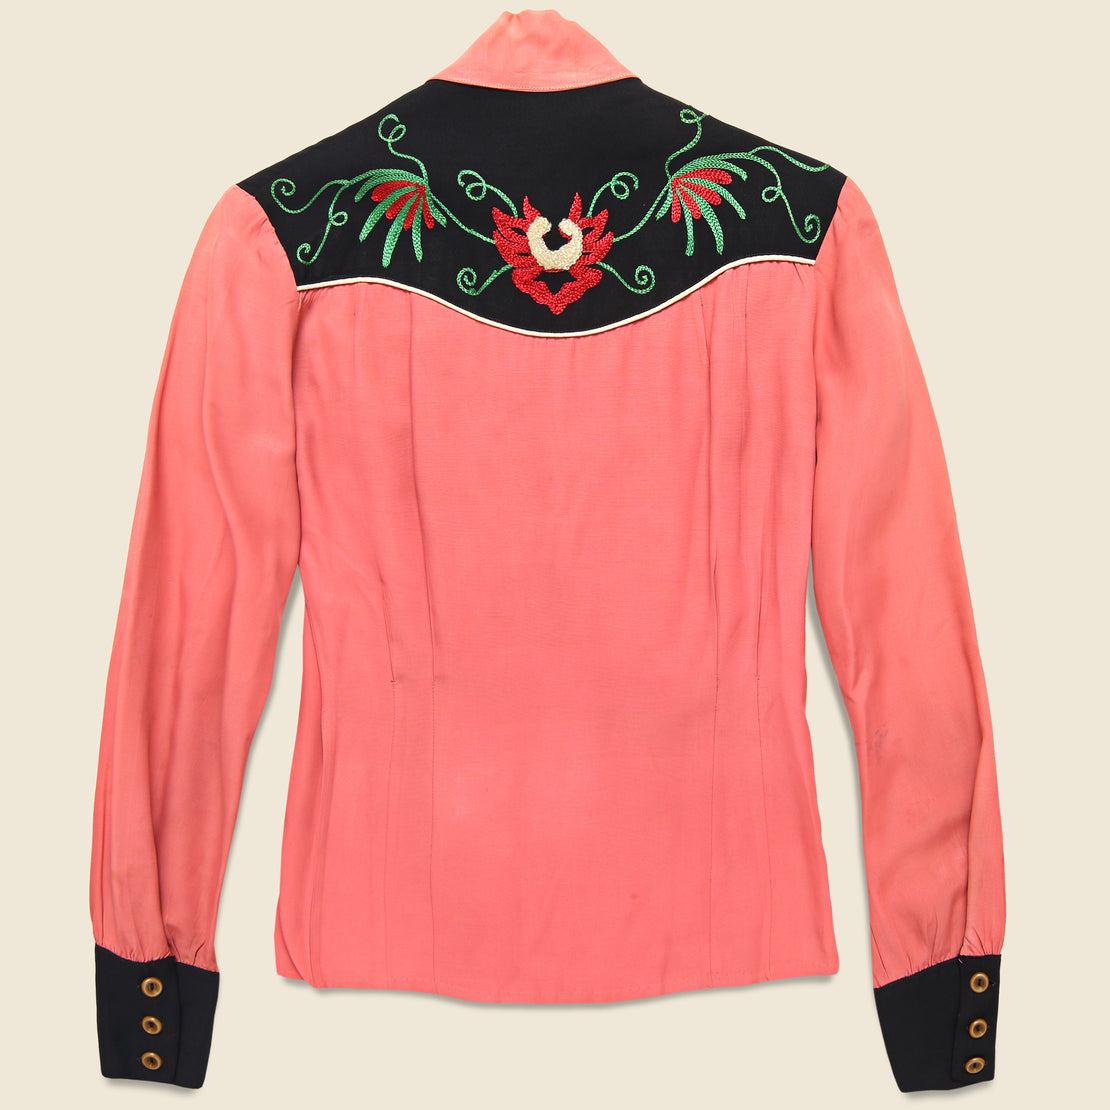 Penneys Ranchcraft Western Embroidered Blouse - Coral Pink